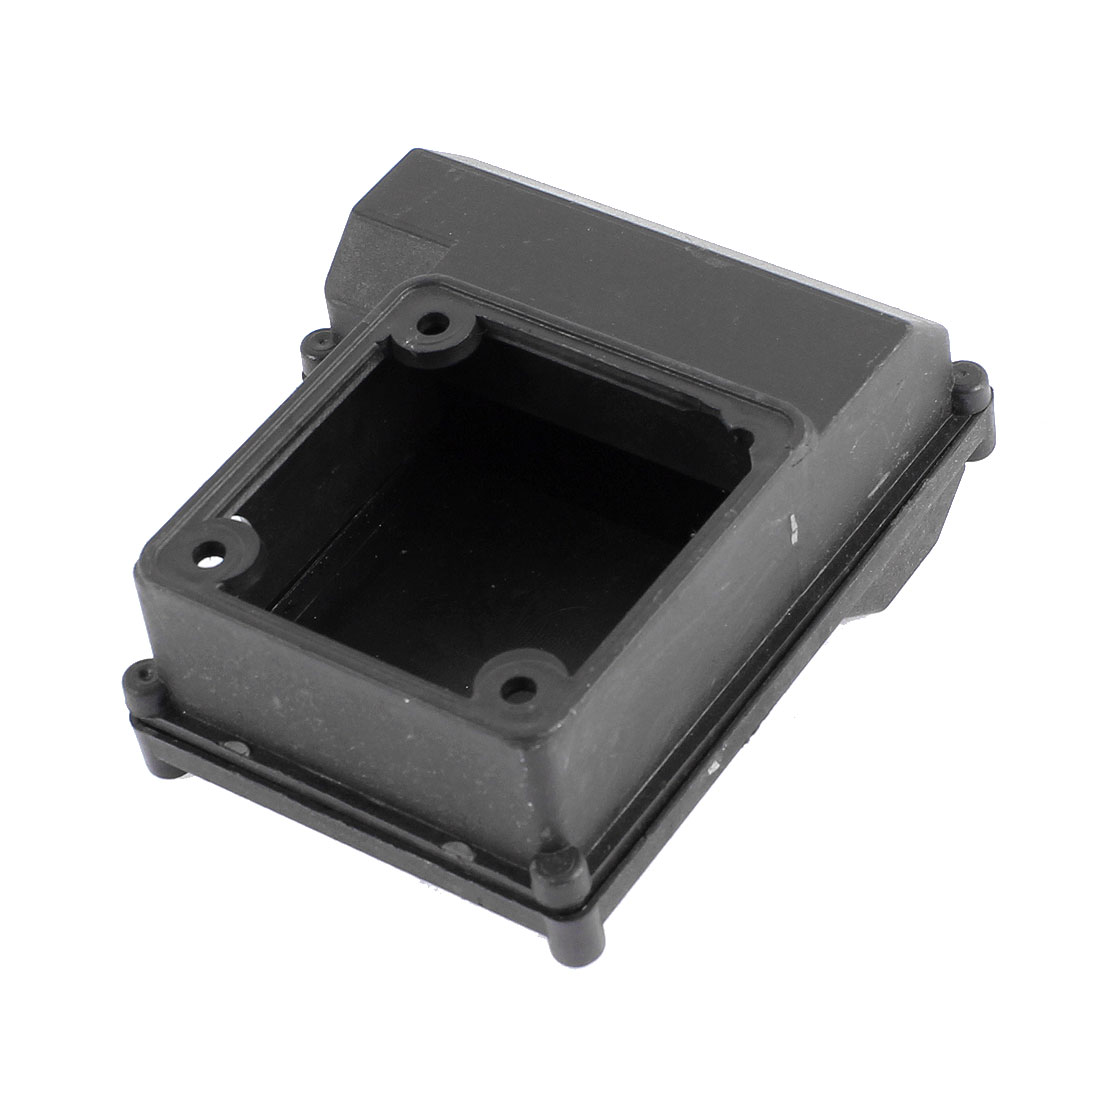 Black Plastic Electric Circuit Connect Junction Box 115mm x 100mm